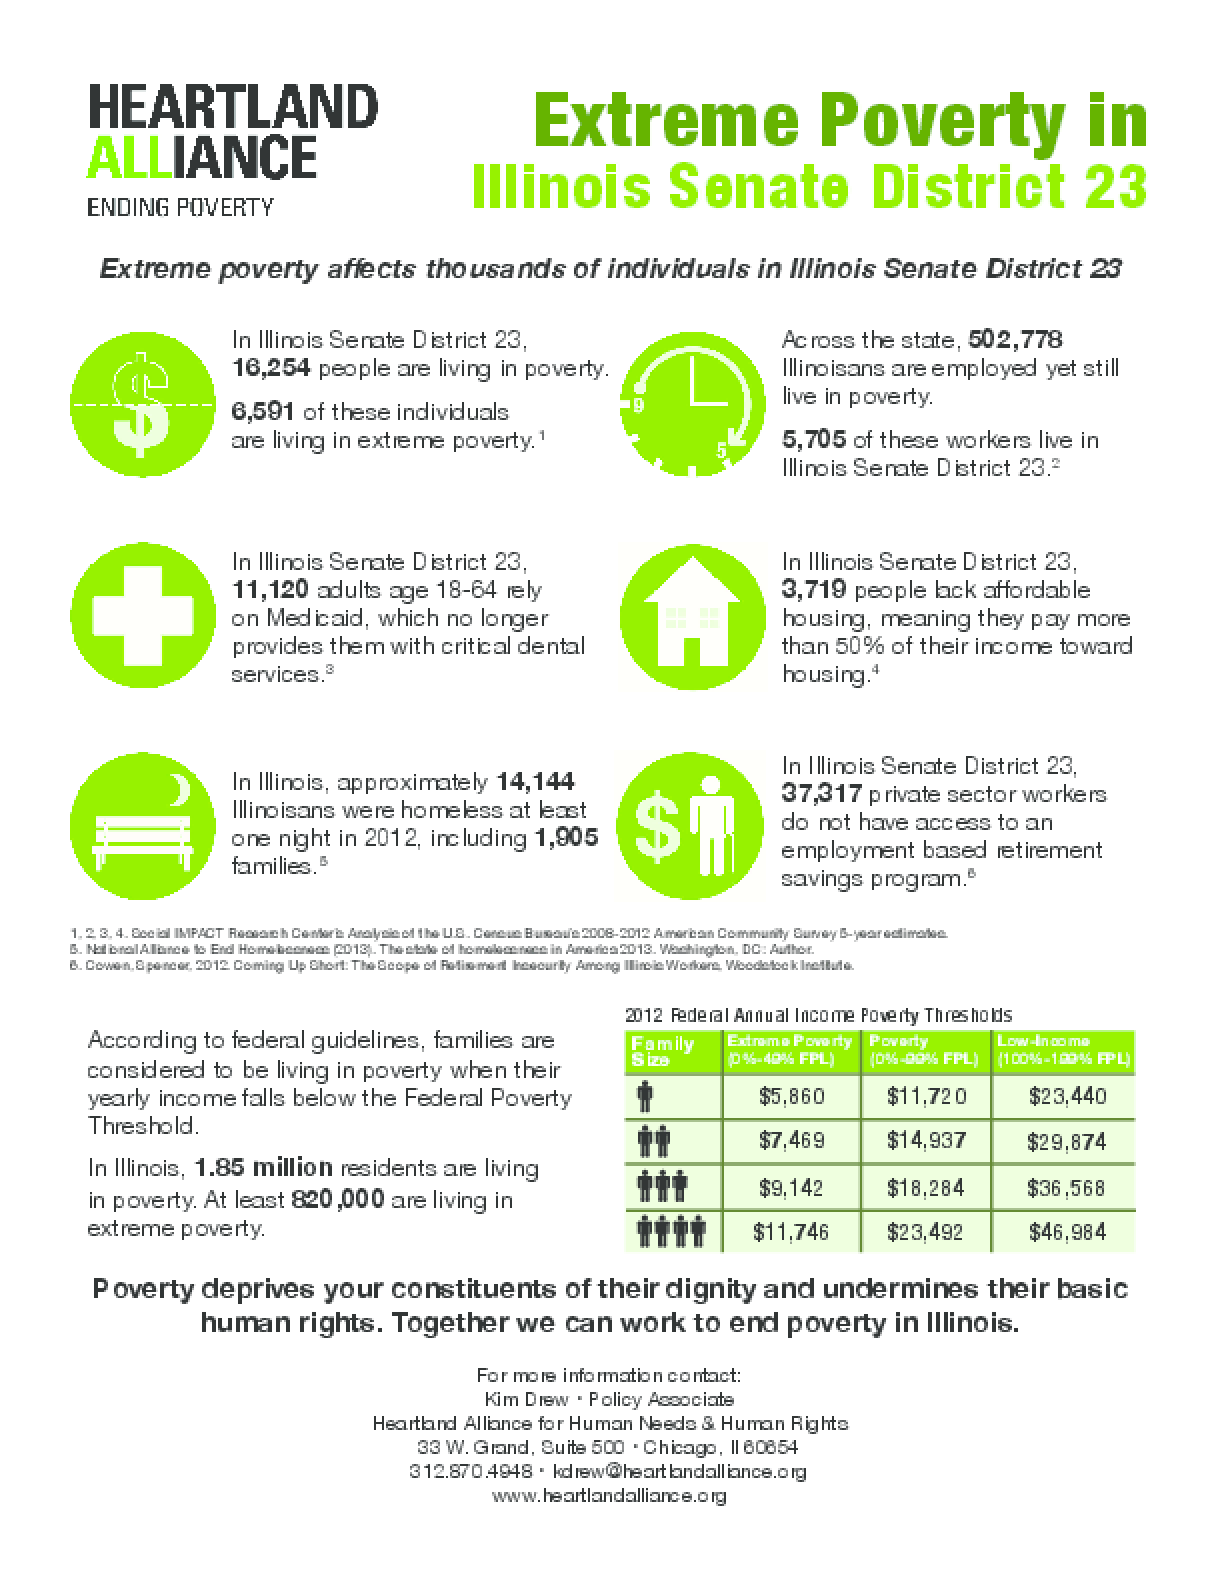 Poverty Fact Sheet for Illinois Senate District 23